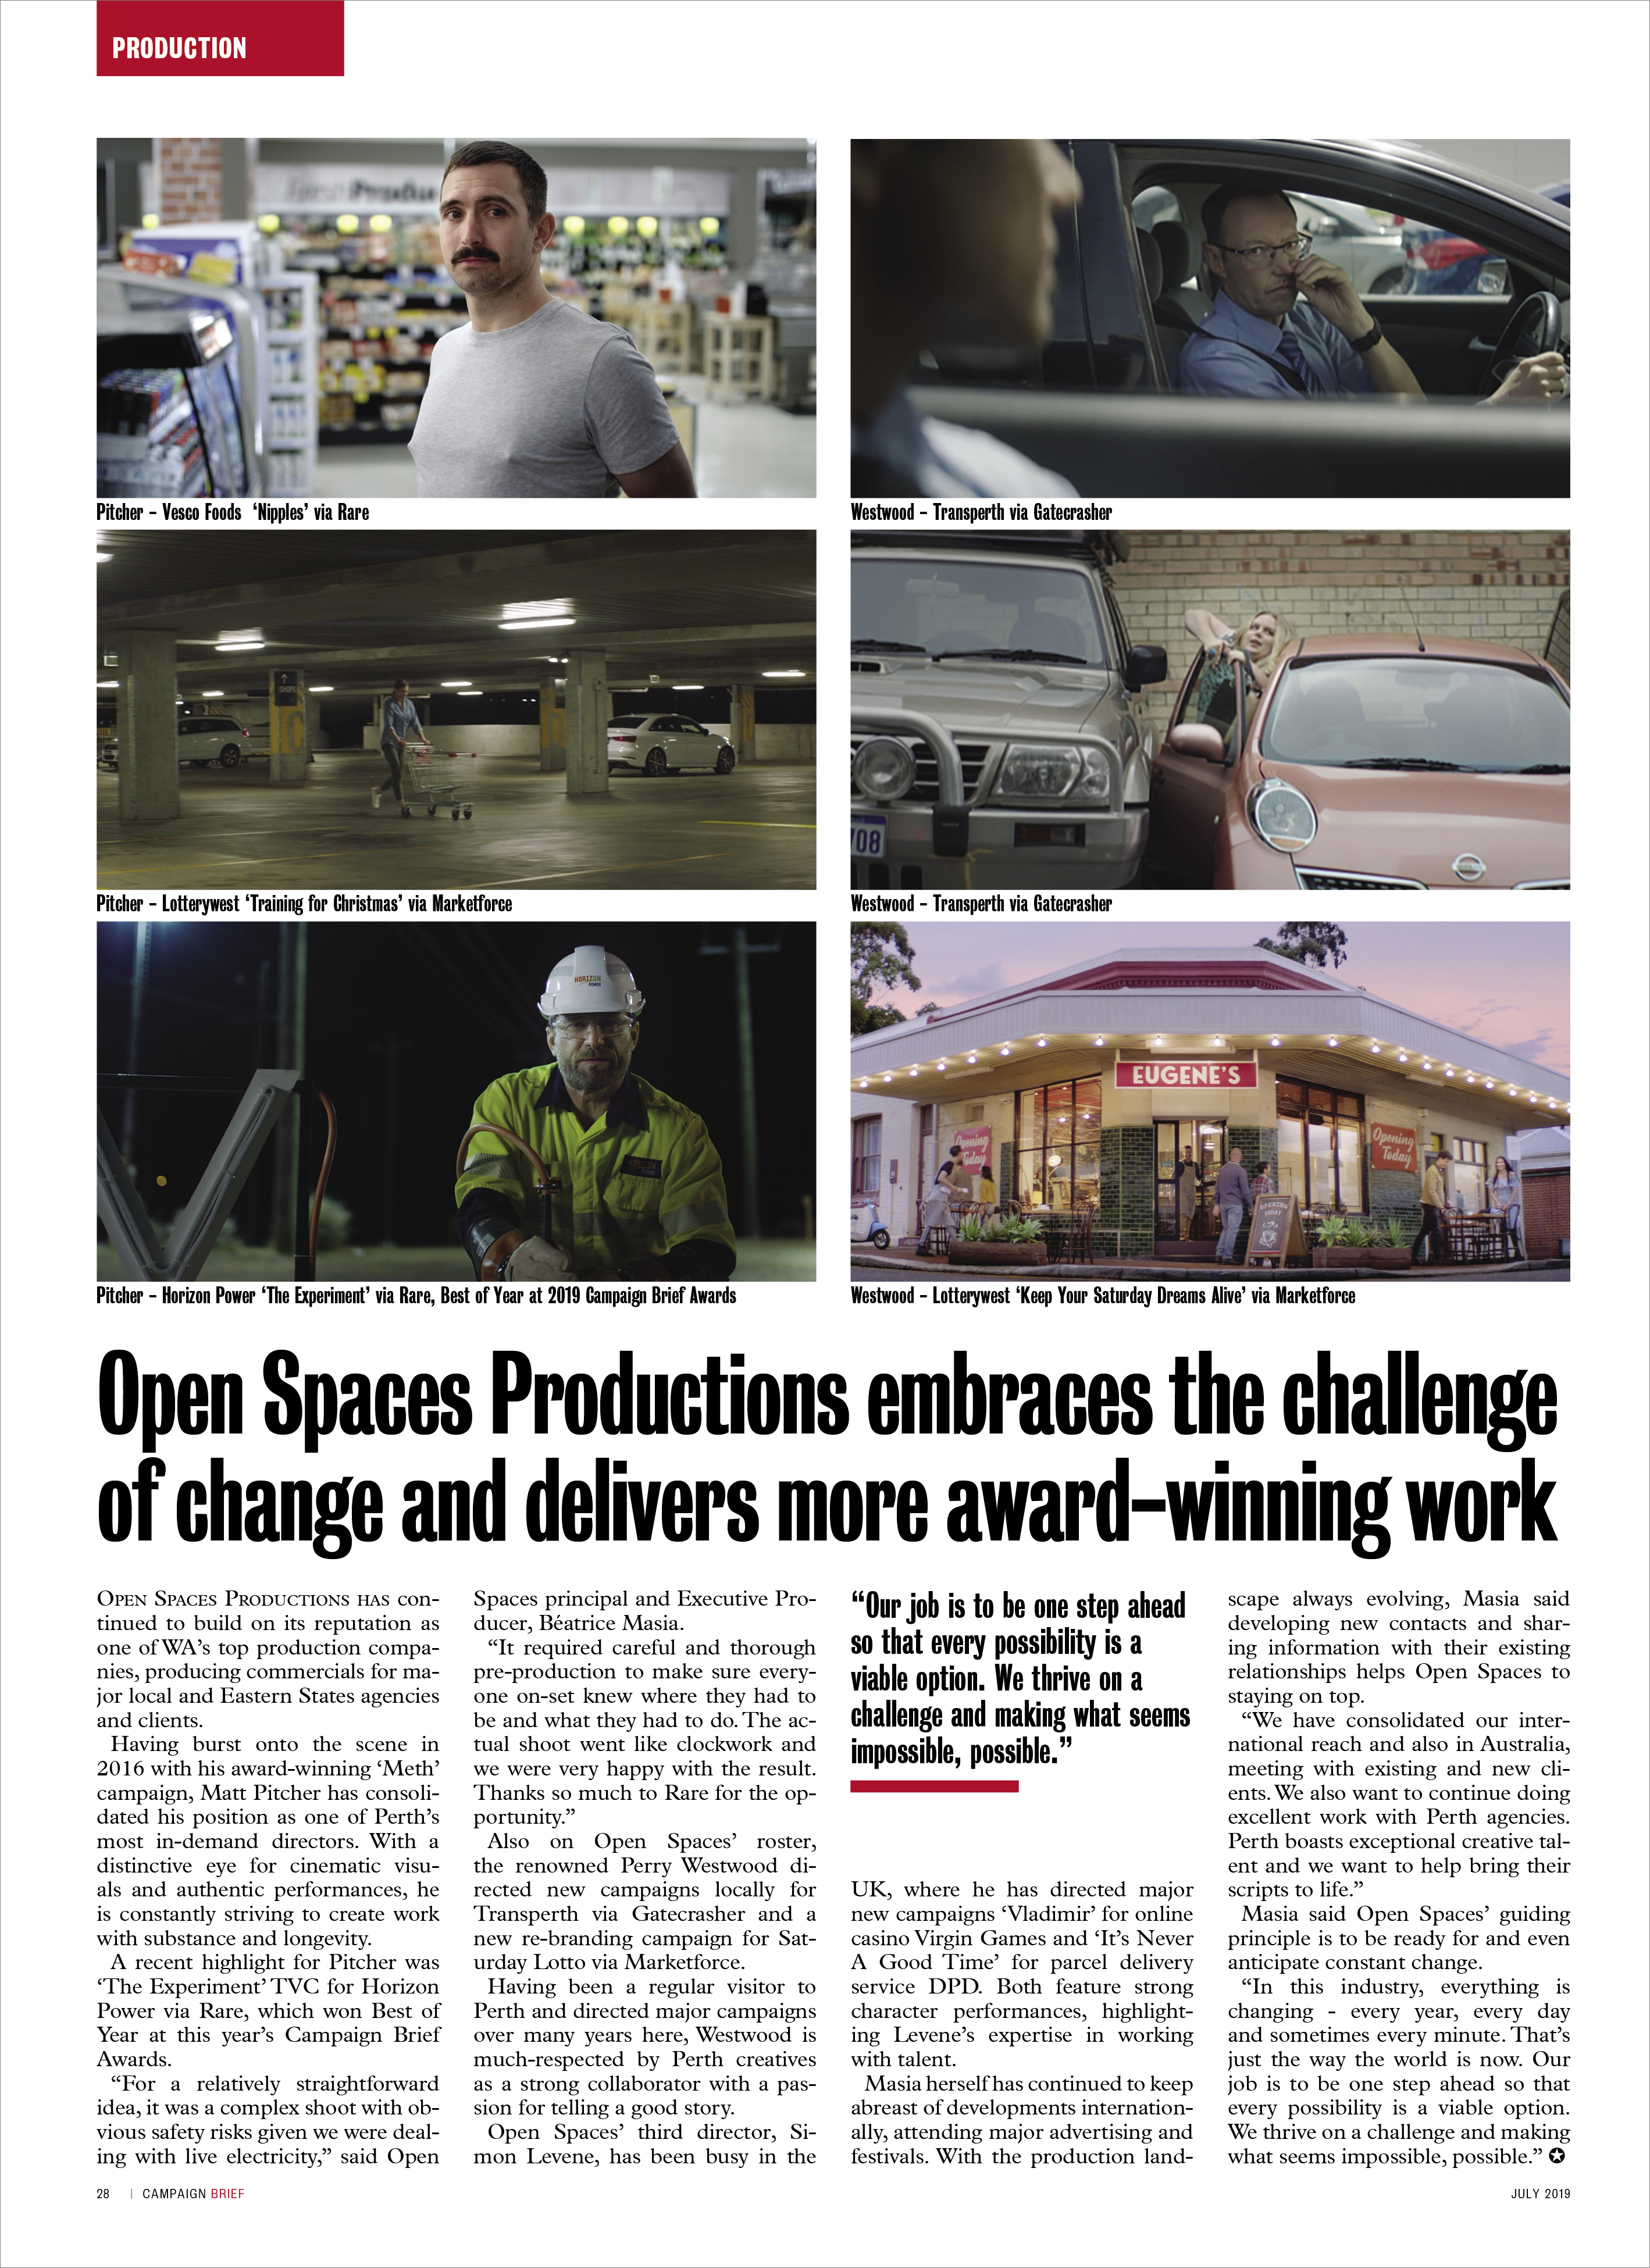 Open Spaces Productions embraces the challenge of change and delivers award-winning work